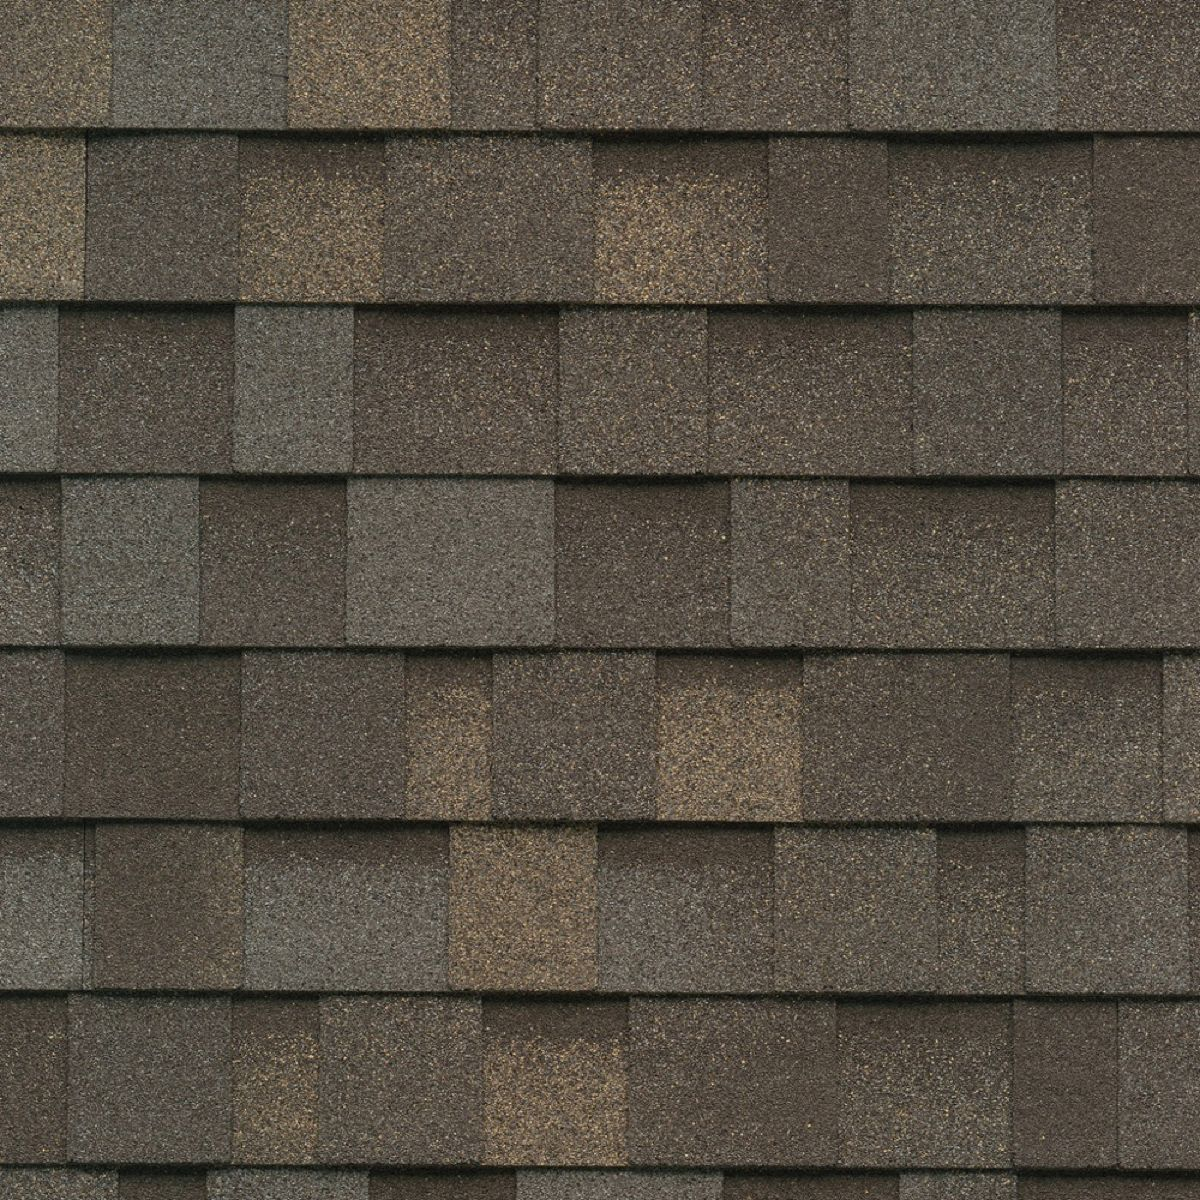 IKO Nordic™ Performance Shingles with ArmourZone® Frostone Grey